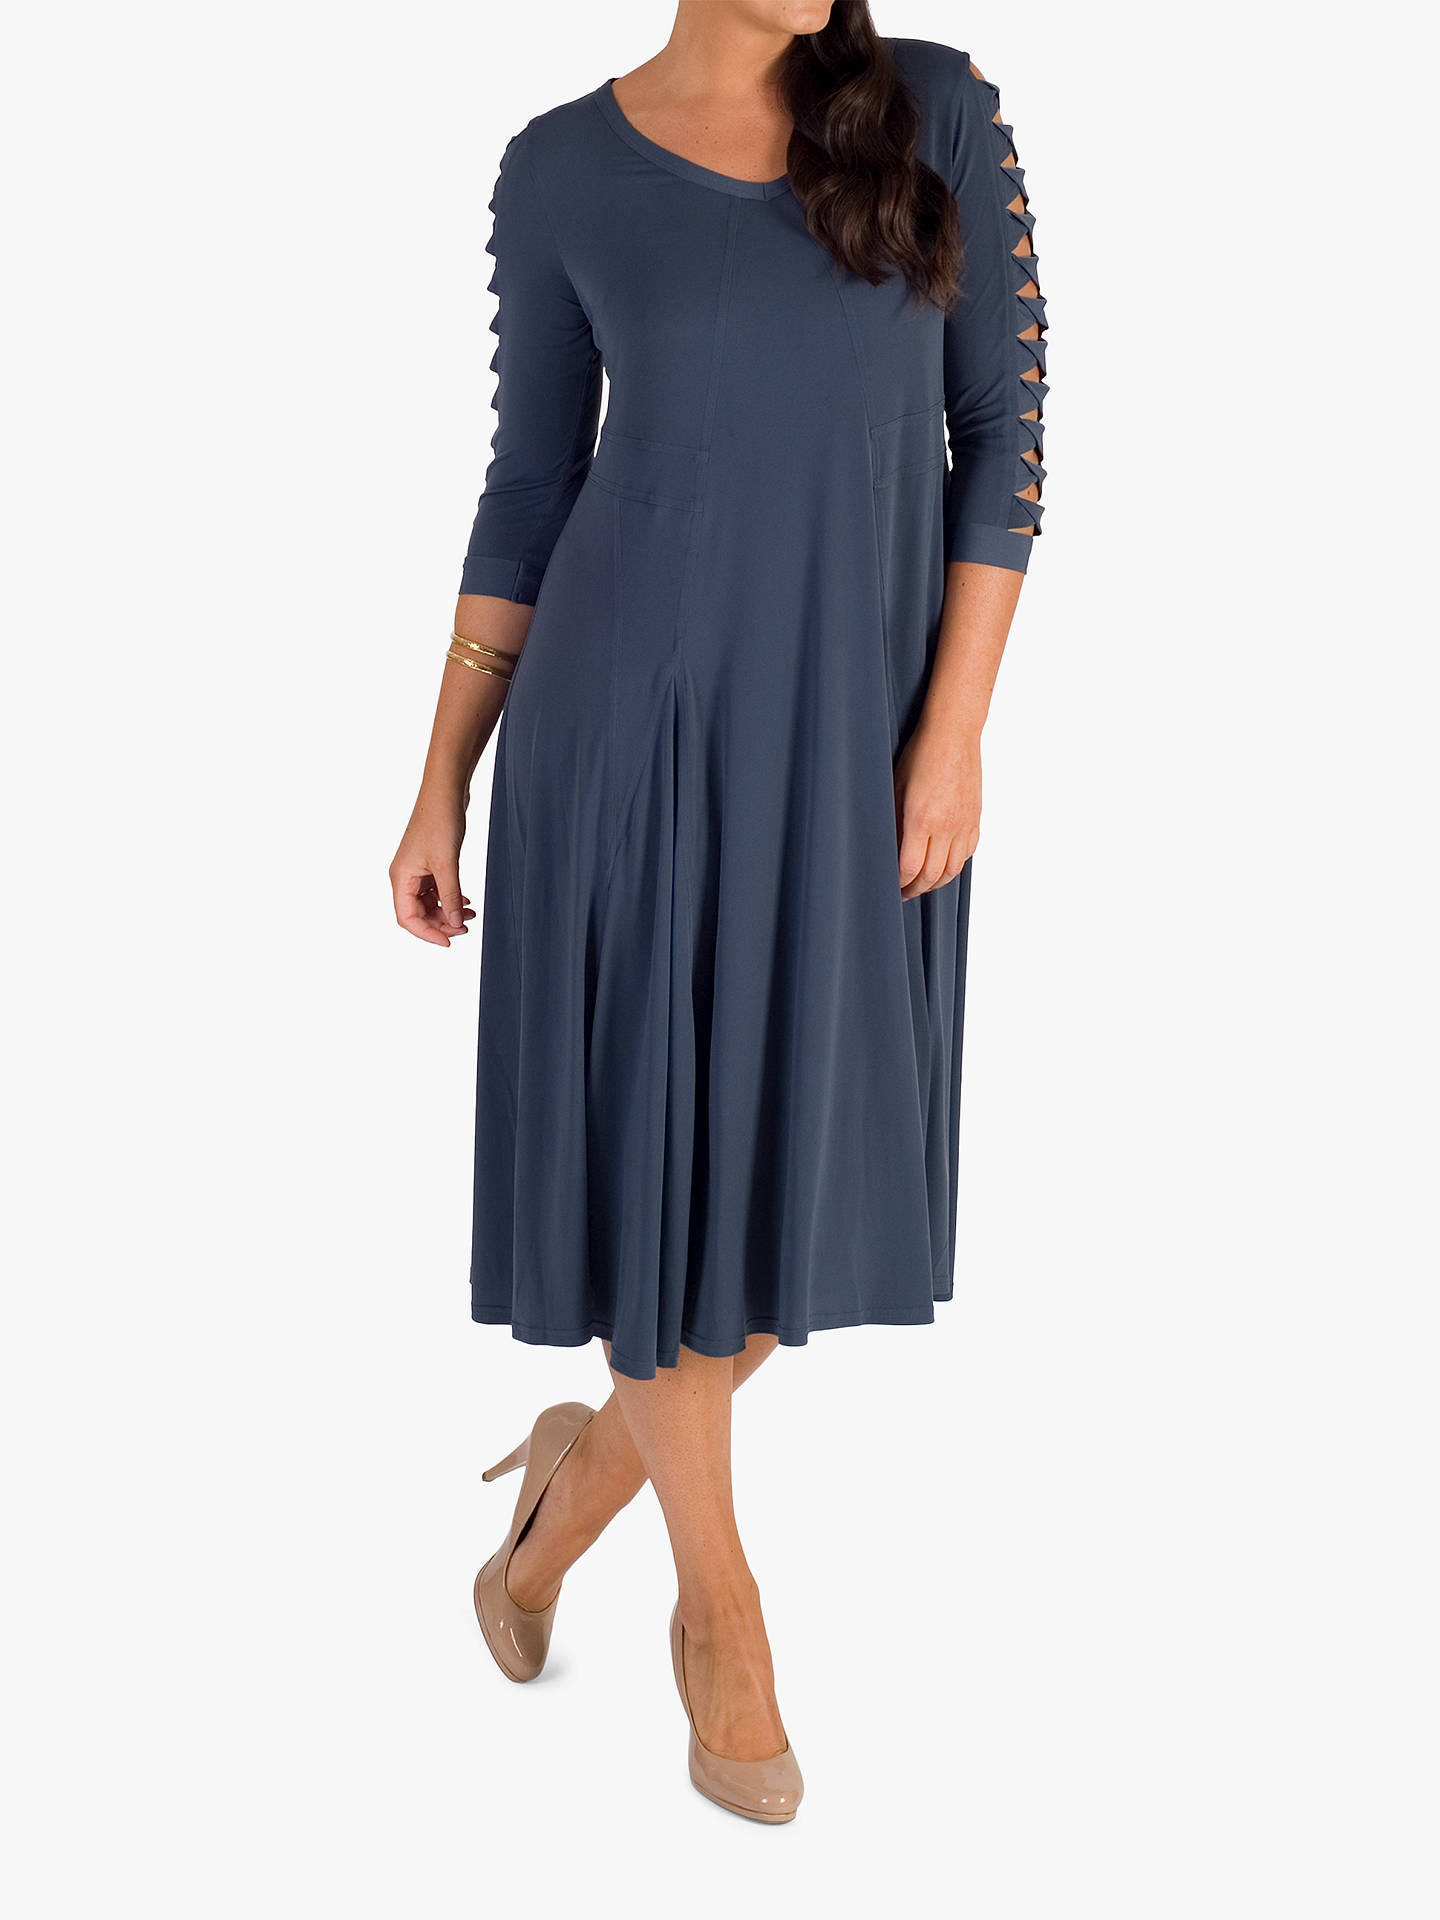 BuyChesca Slate Lattice Dress, Slate Grey, 12-14 Online at johnlewis.com